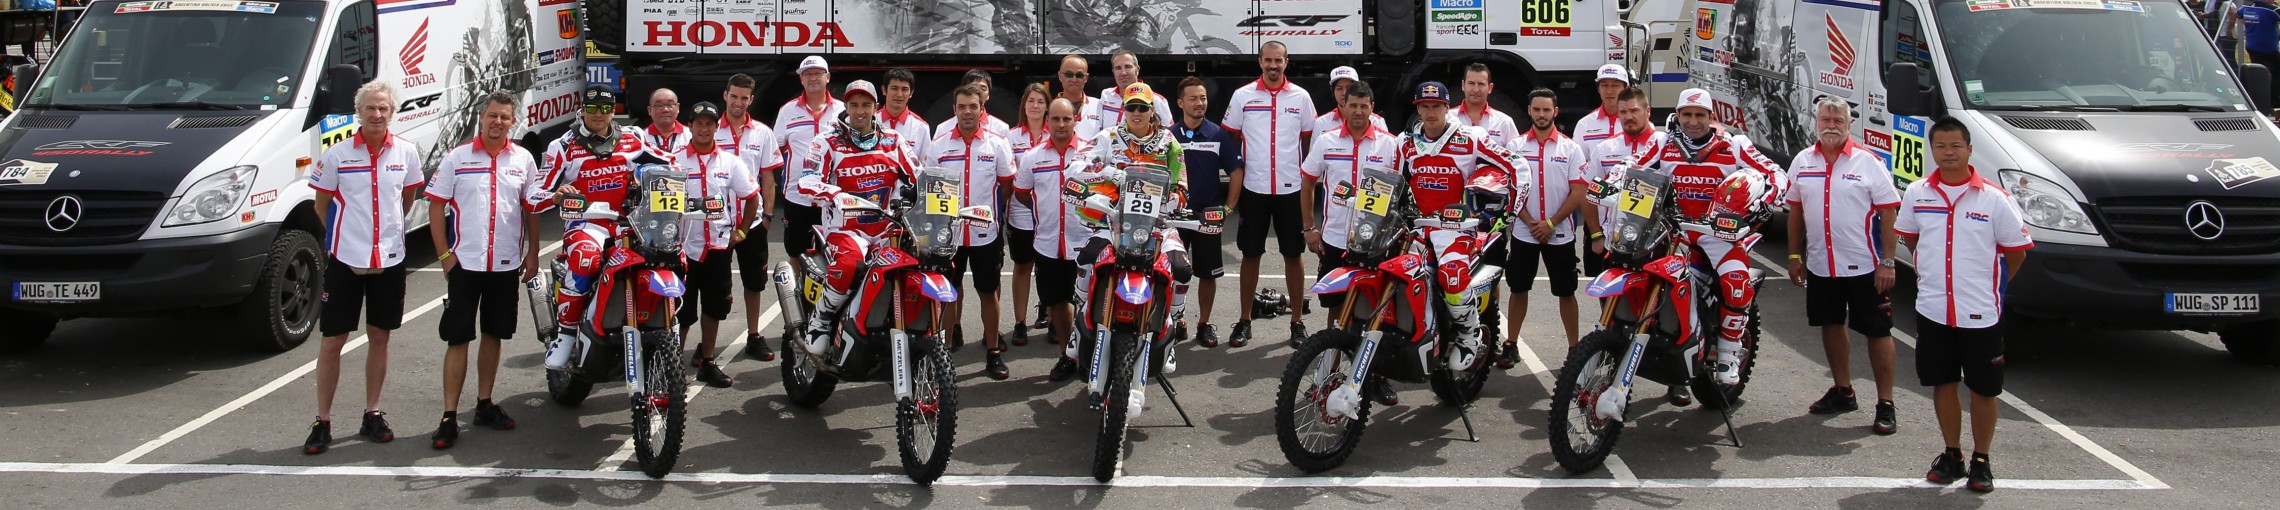 Dakar 2015: Let the show begin!